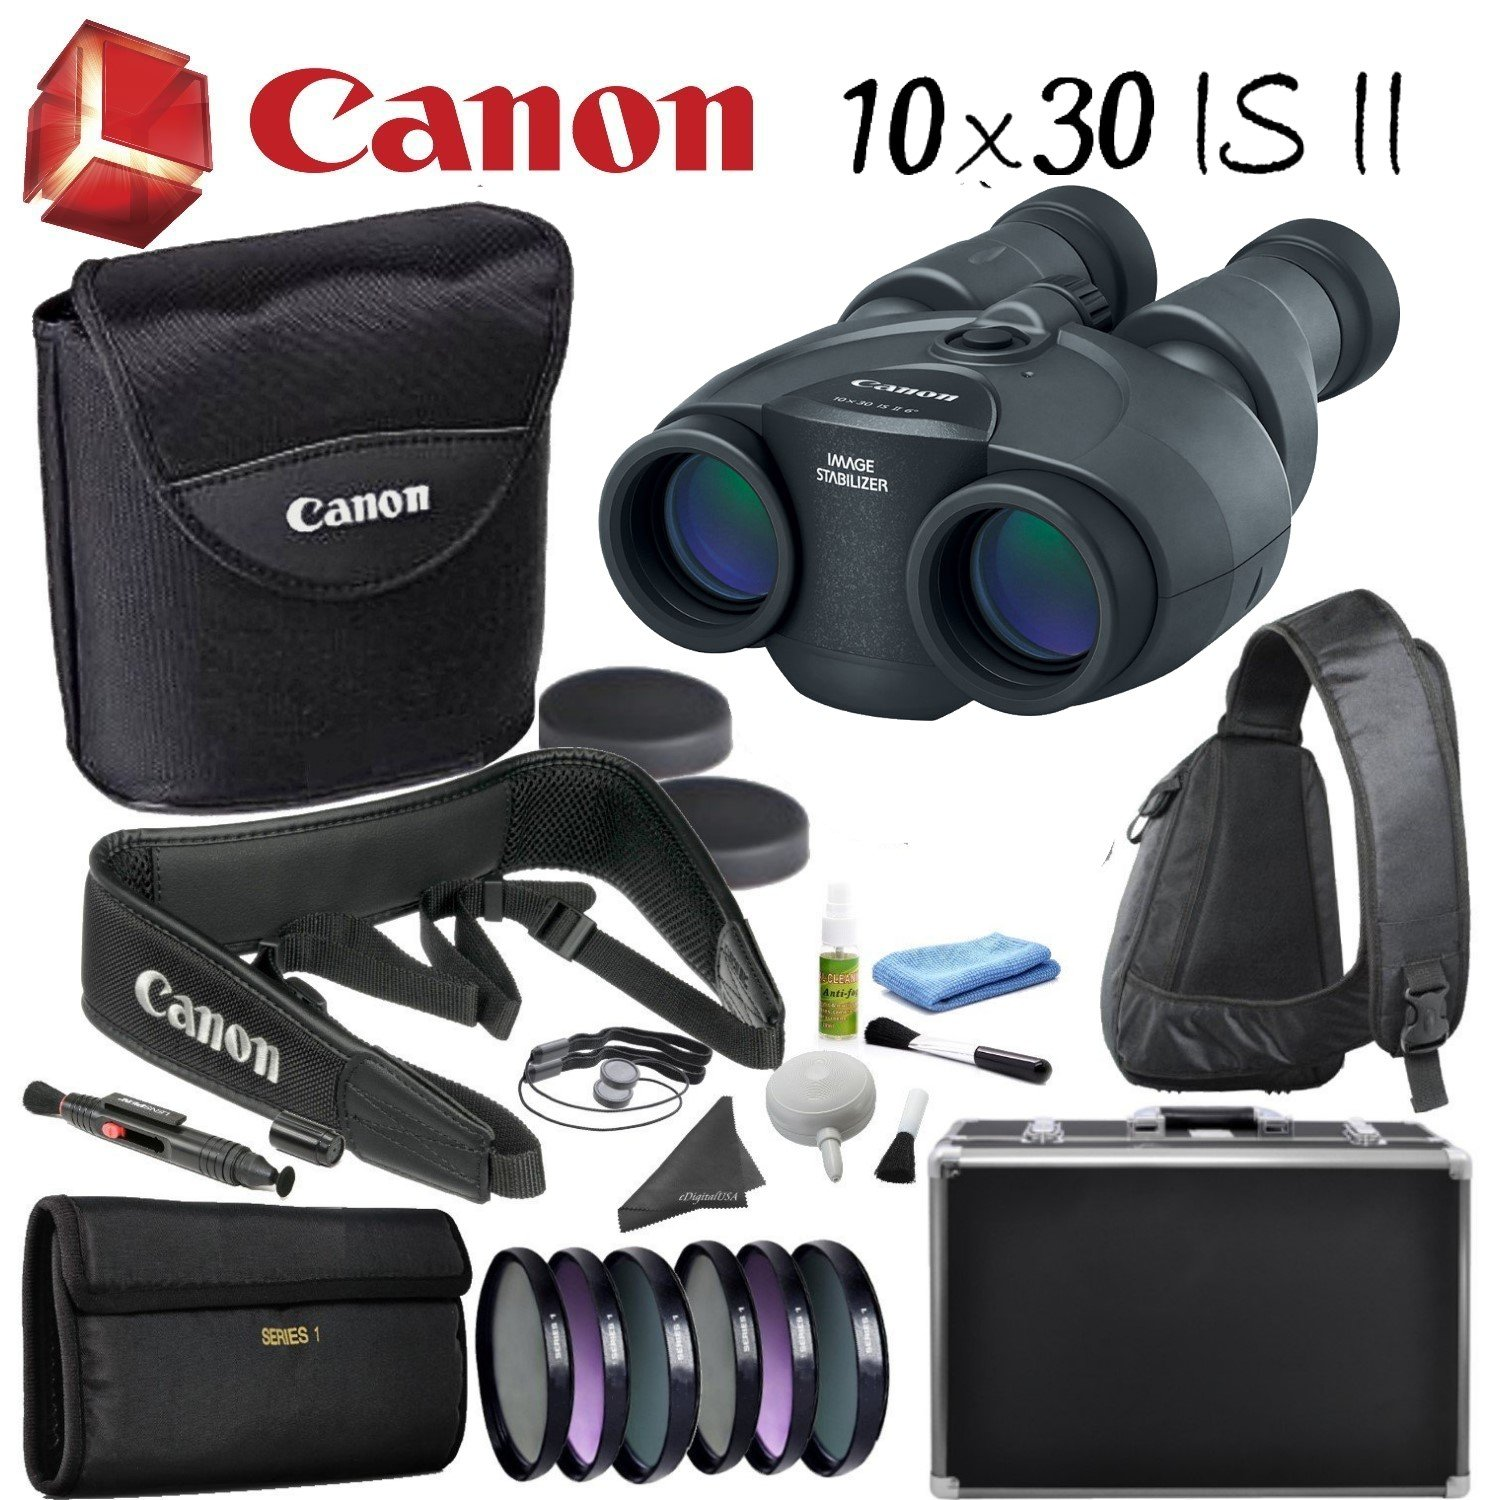 Canon Image Stabilized双眼バンドル B07D7DQWYM Professional Bundle|10x30 IS II Binoculars 10x30 IS II Binoculars Professional Bundle